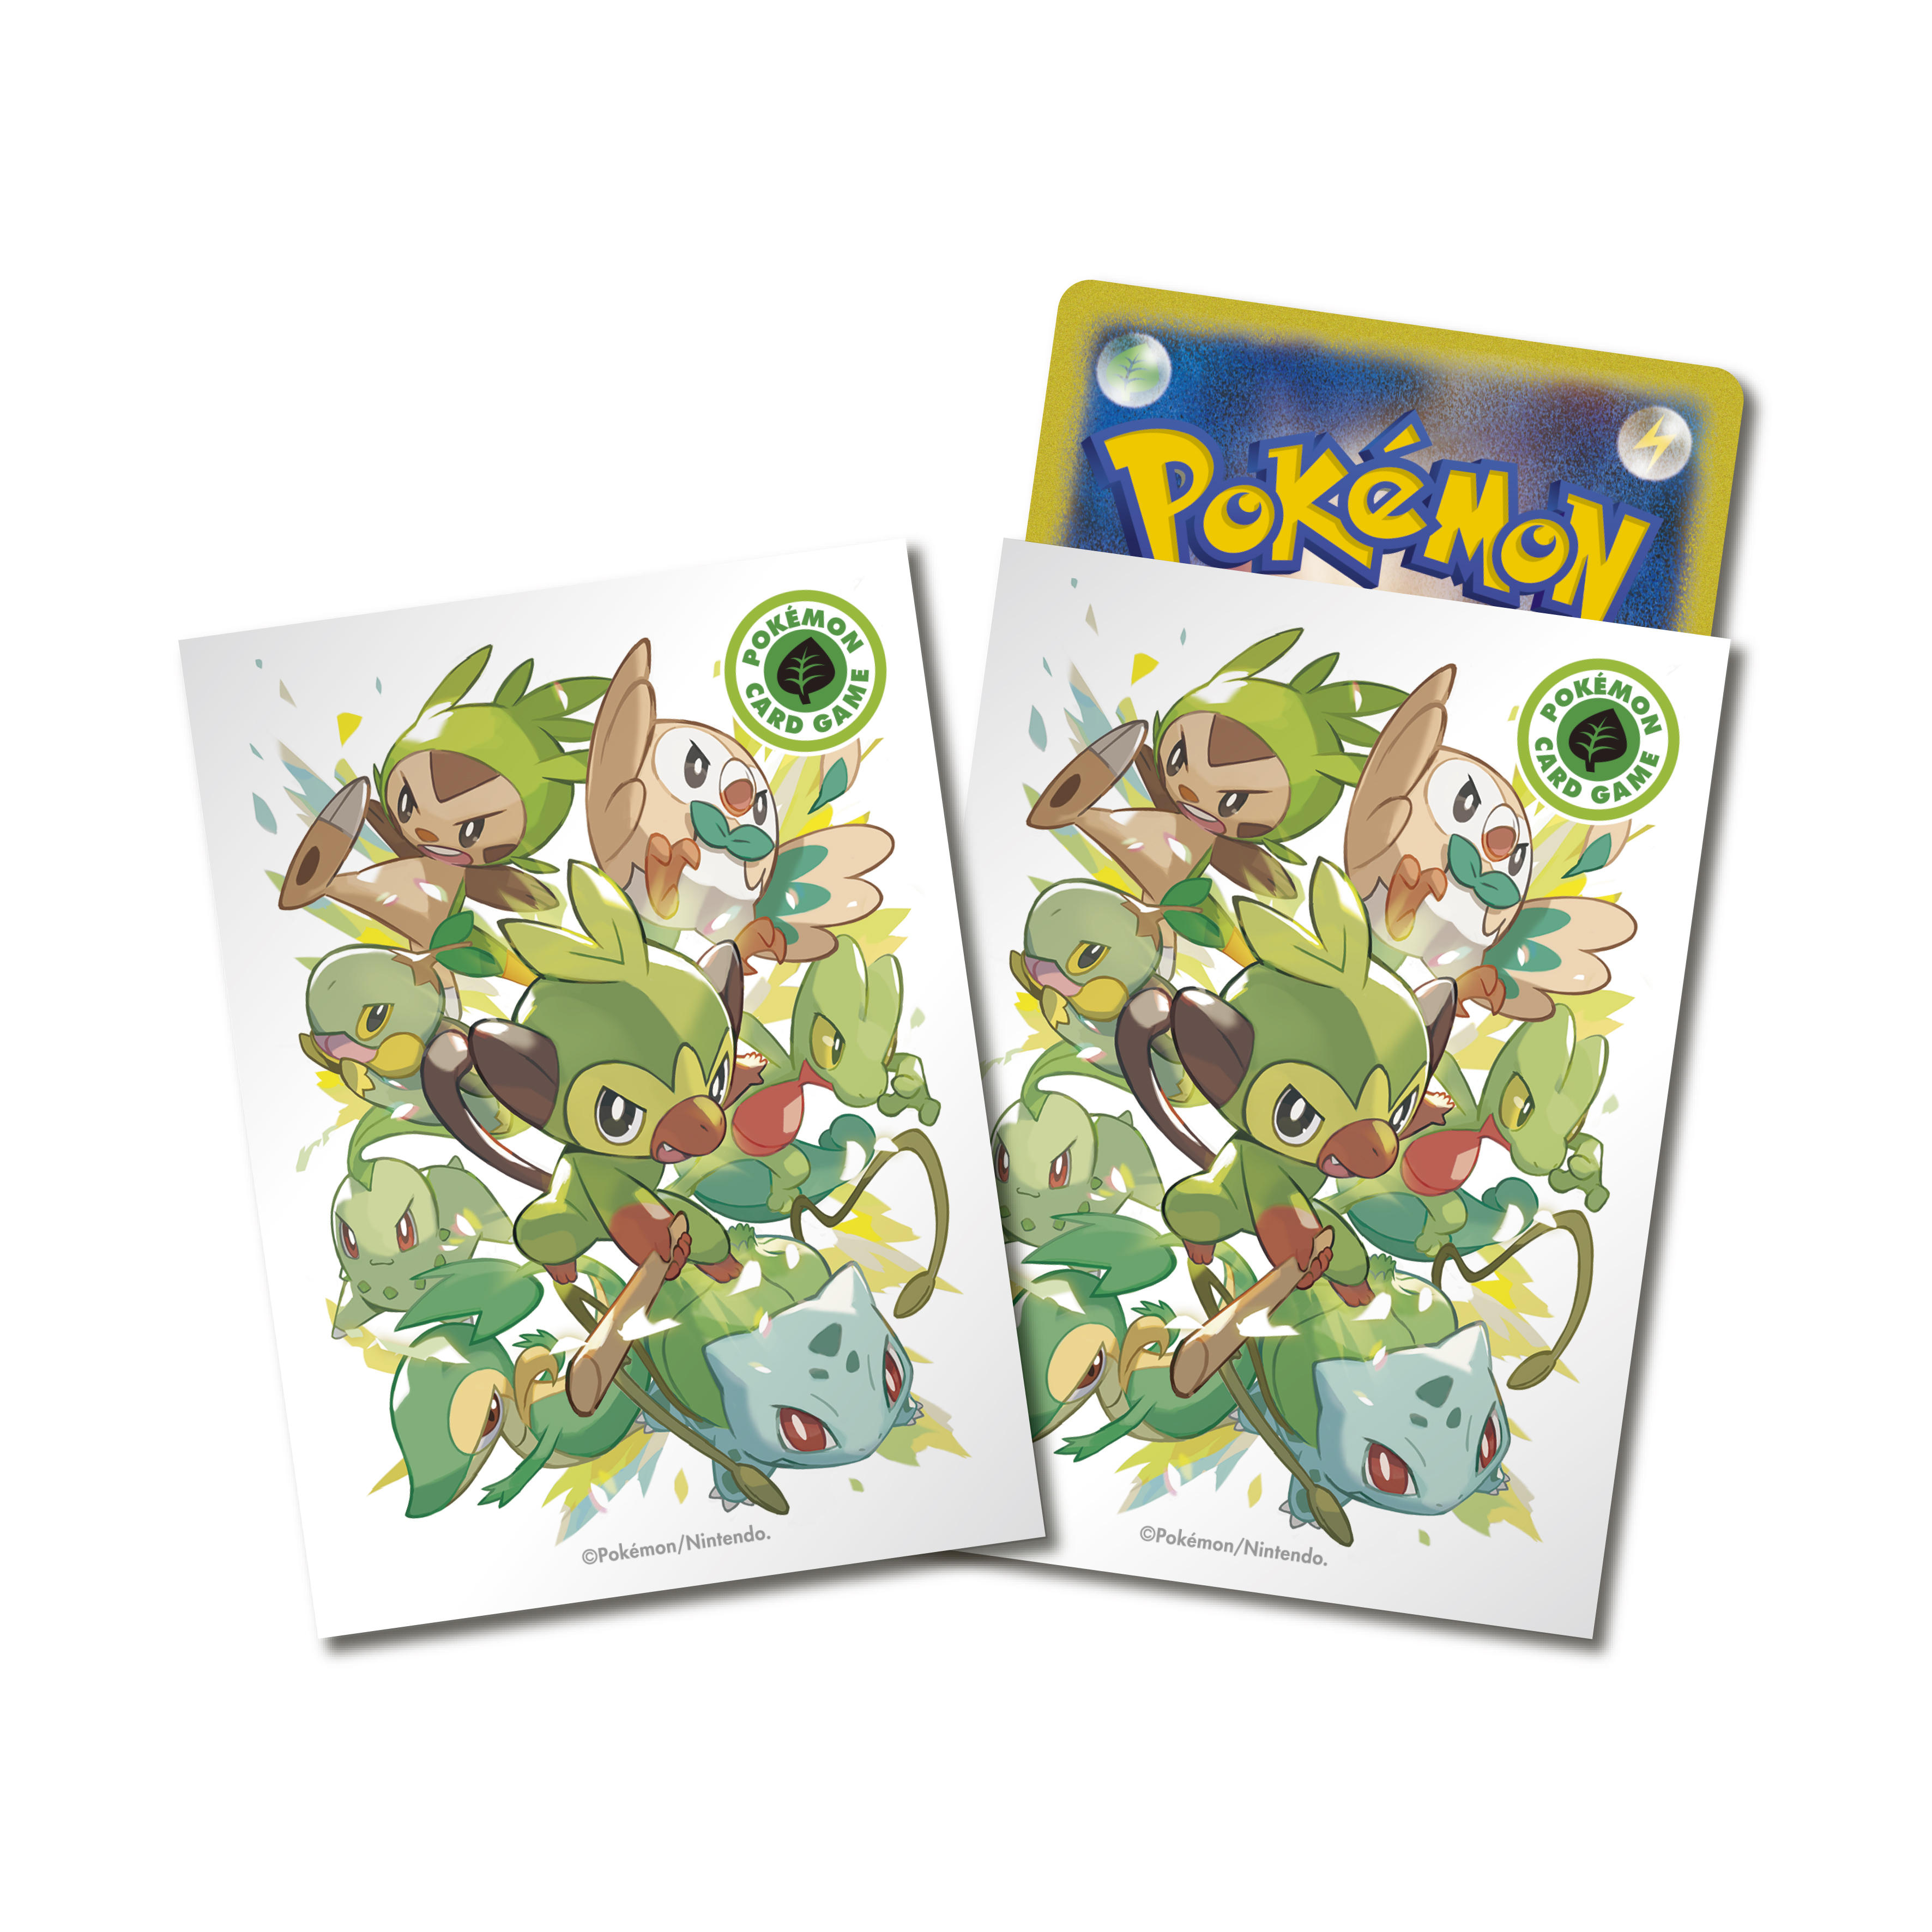 Pokemon Co. releases Pokemon TCG card sleeves featuring Pokemon Sword and Shield starters